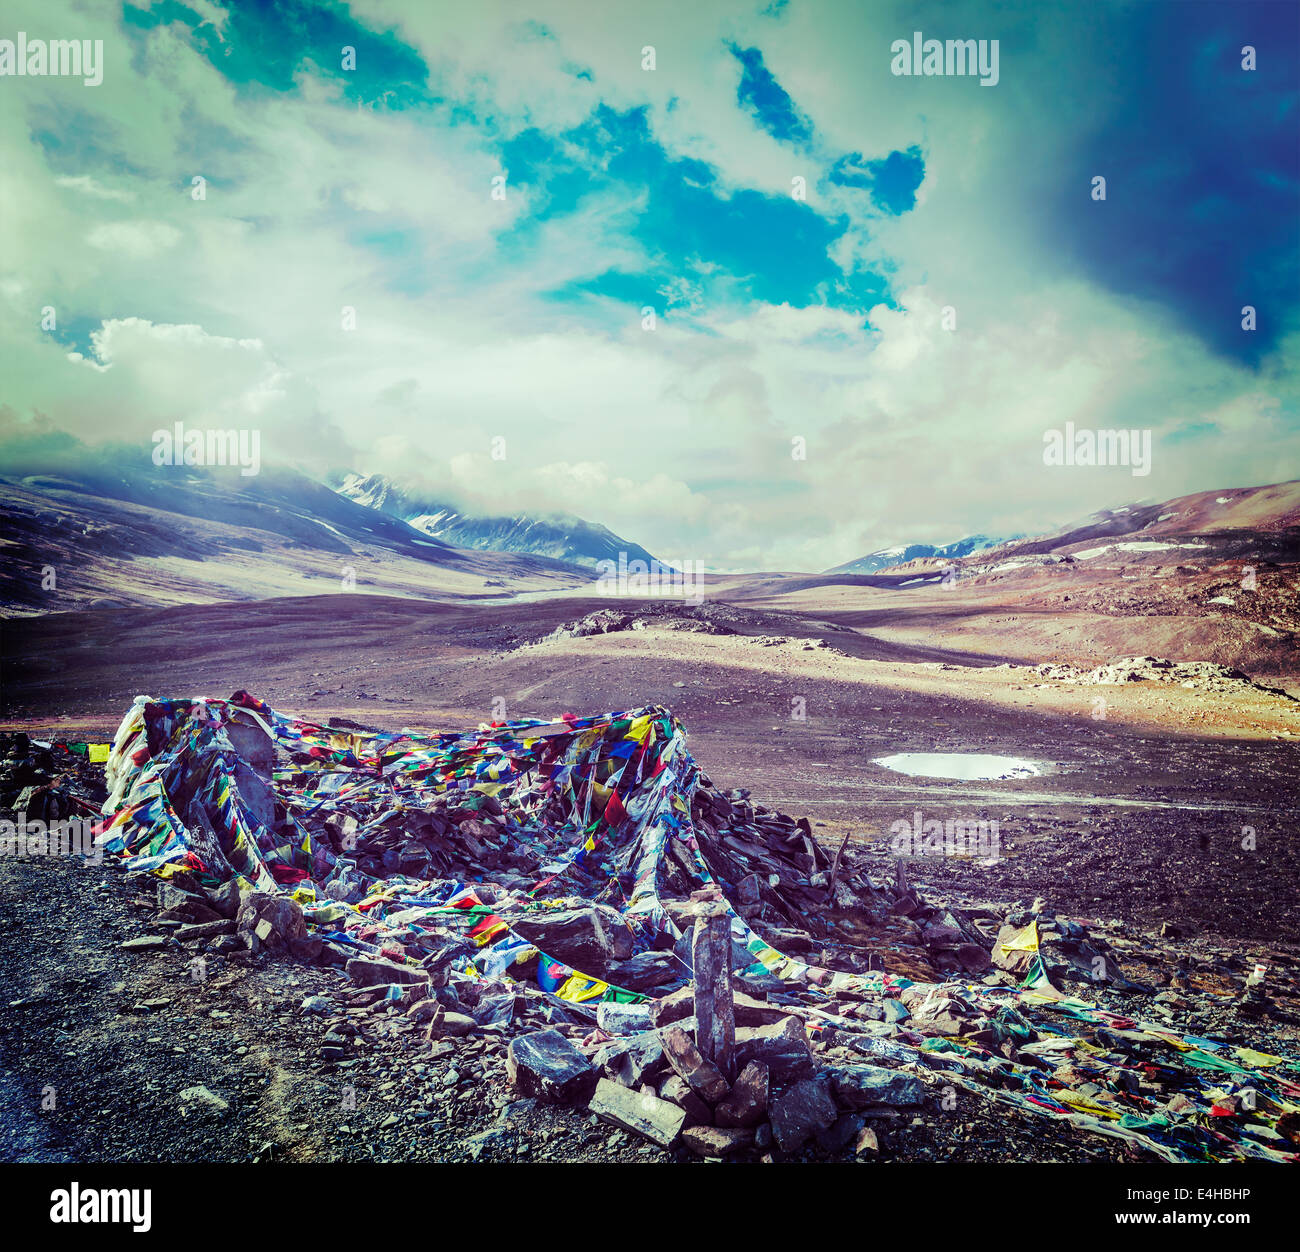 Vintage retro effect filtered hipster style travel image of Buddhist prayer flags (lungta) on Baralacha La pass - Stock Image